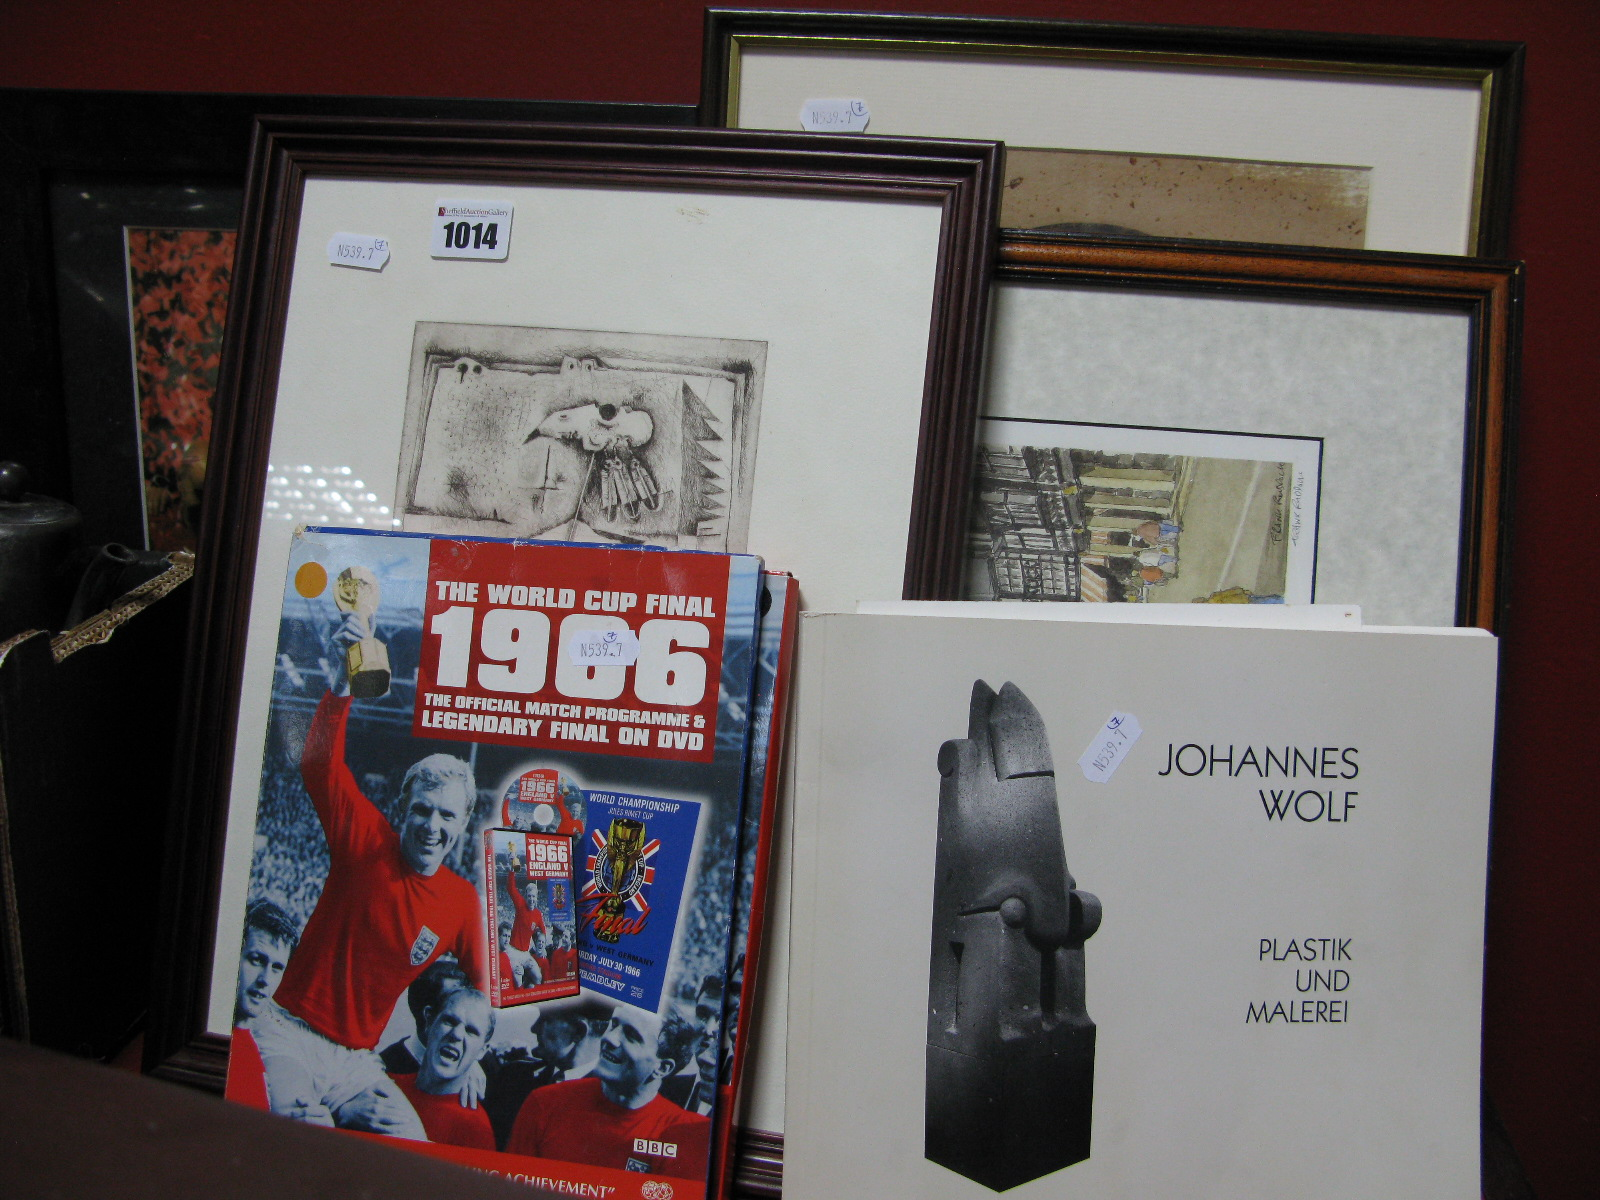 Lot 1014 - Johannes Wolf Exhibition Catalogue, together with three signed limited edition prints; a Frank